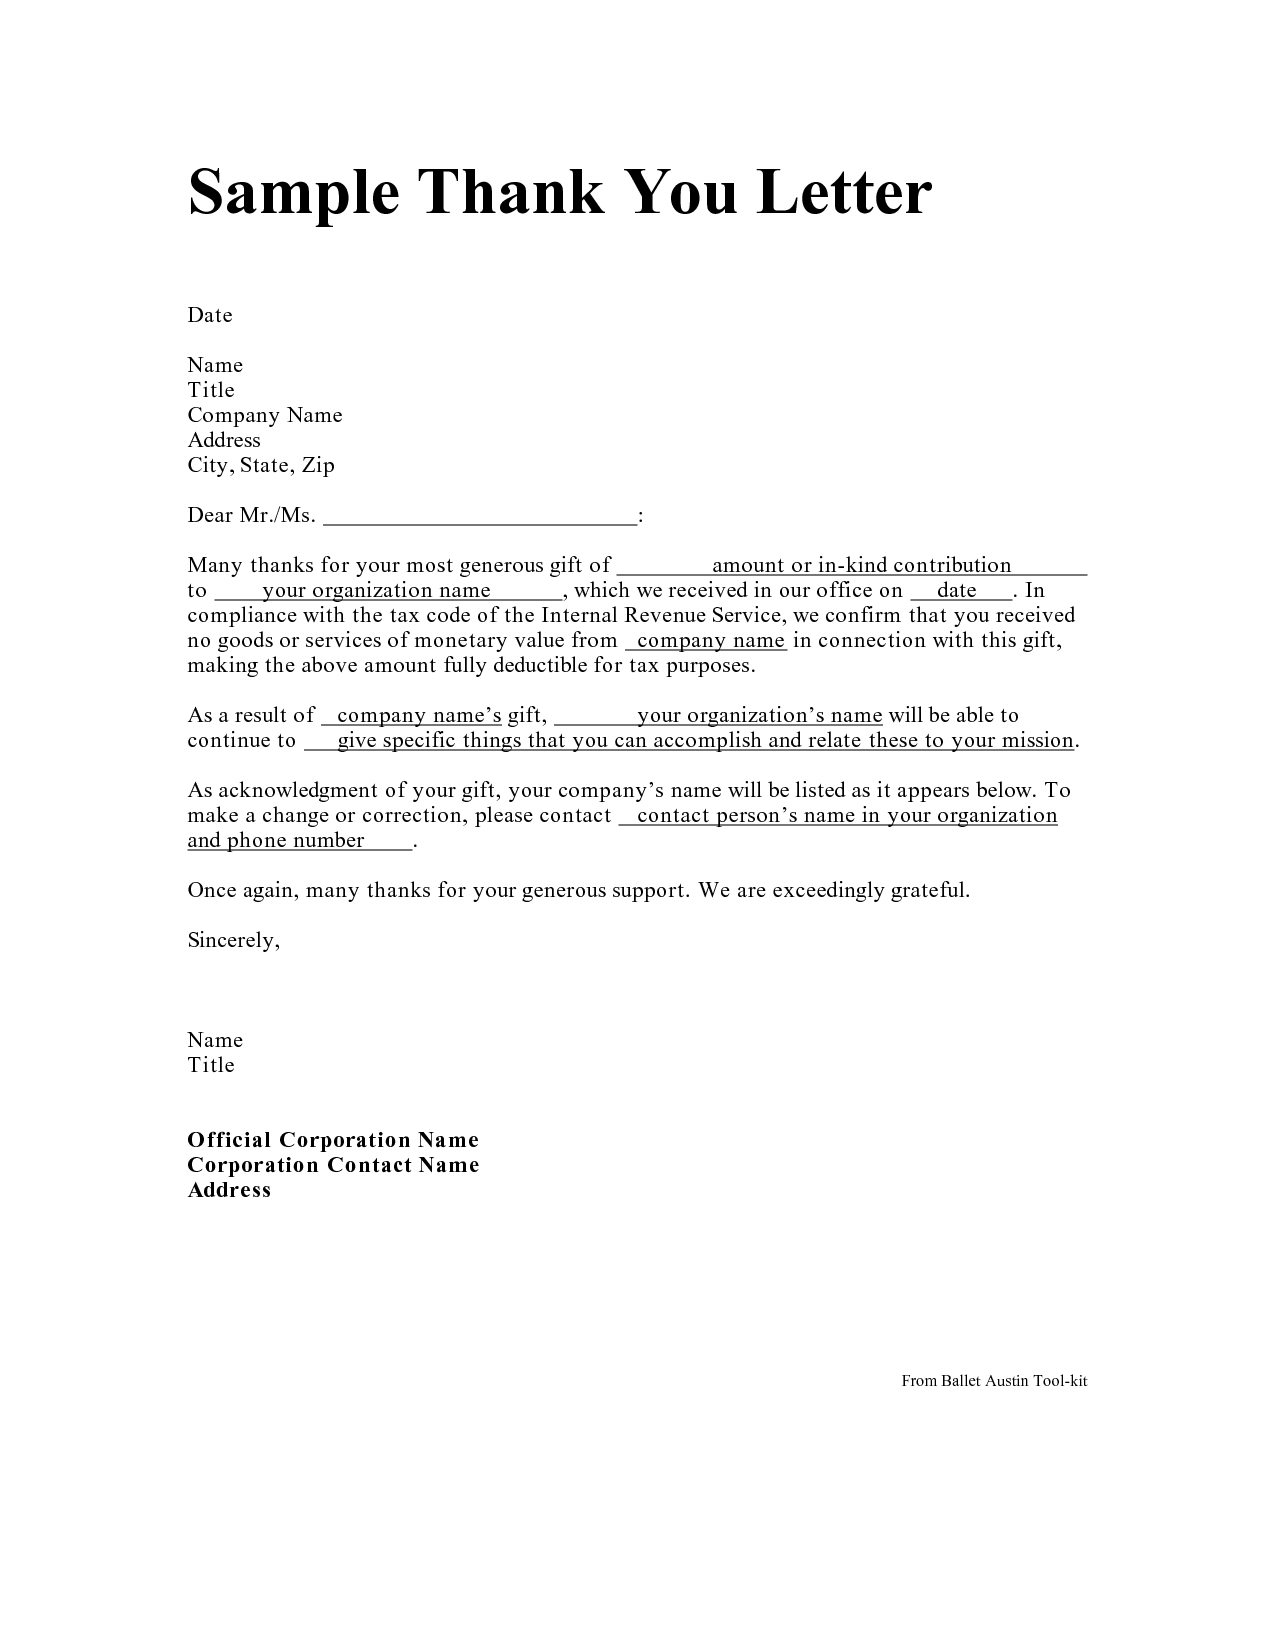 Food Donation Letter Template - Personal Thank You Letter Personal Thank You Letter Samples